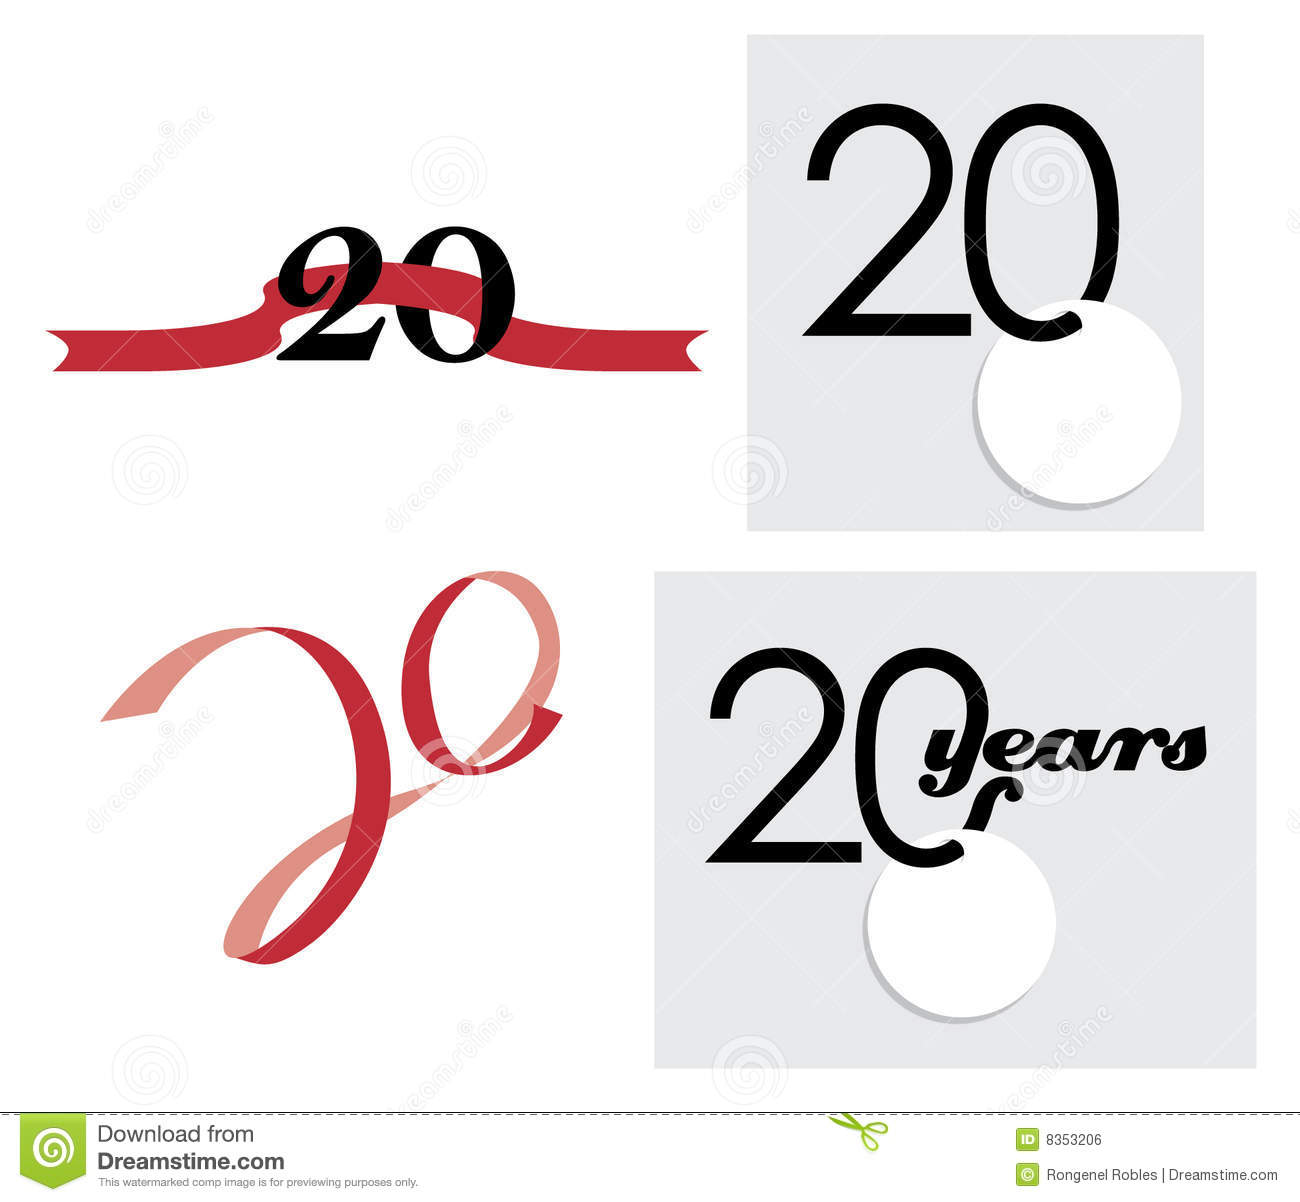 20th Anniversary Celebration Royalty Free Stock Image - Image: 8353206